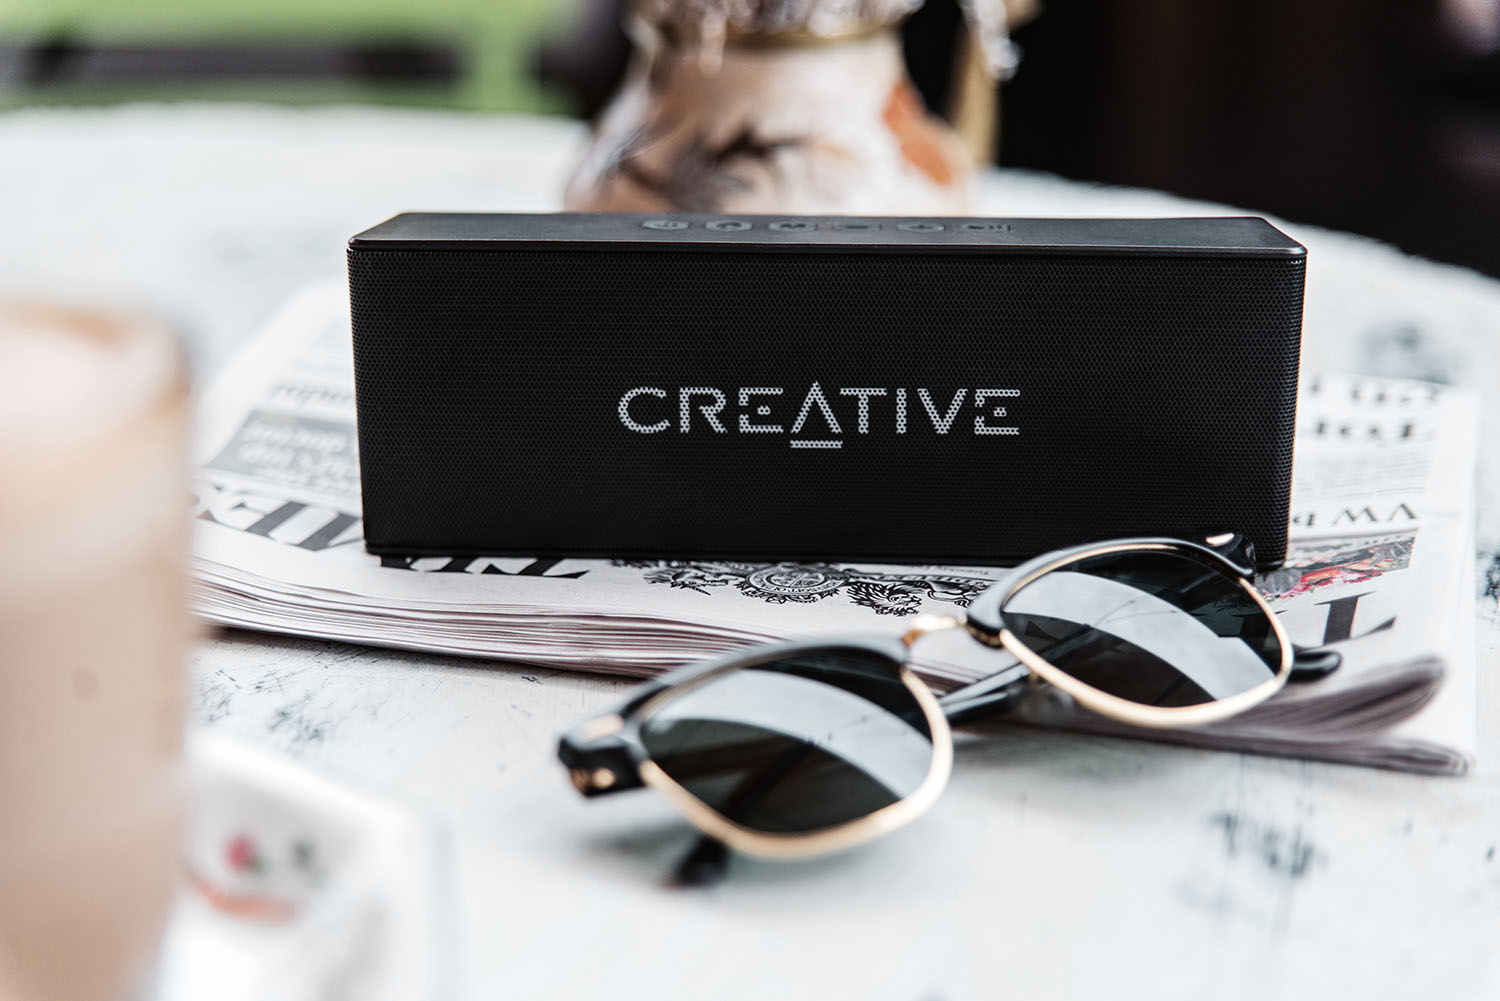 Creative MUVO 2 Bluetooth Speaker